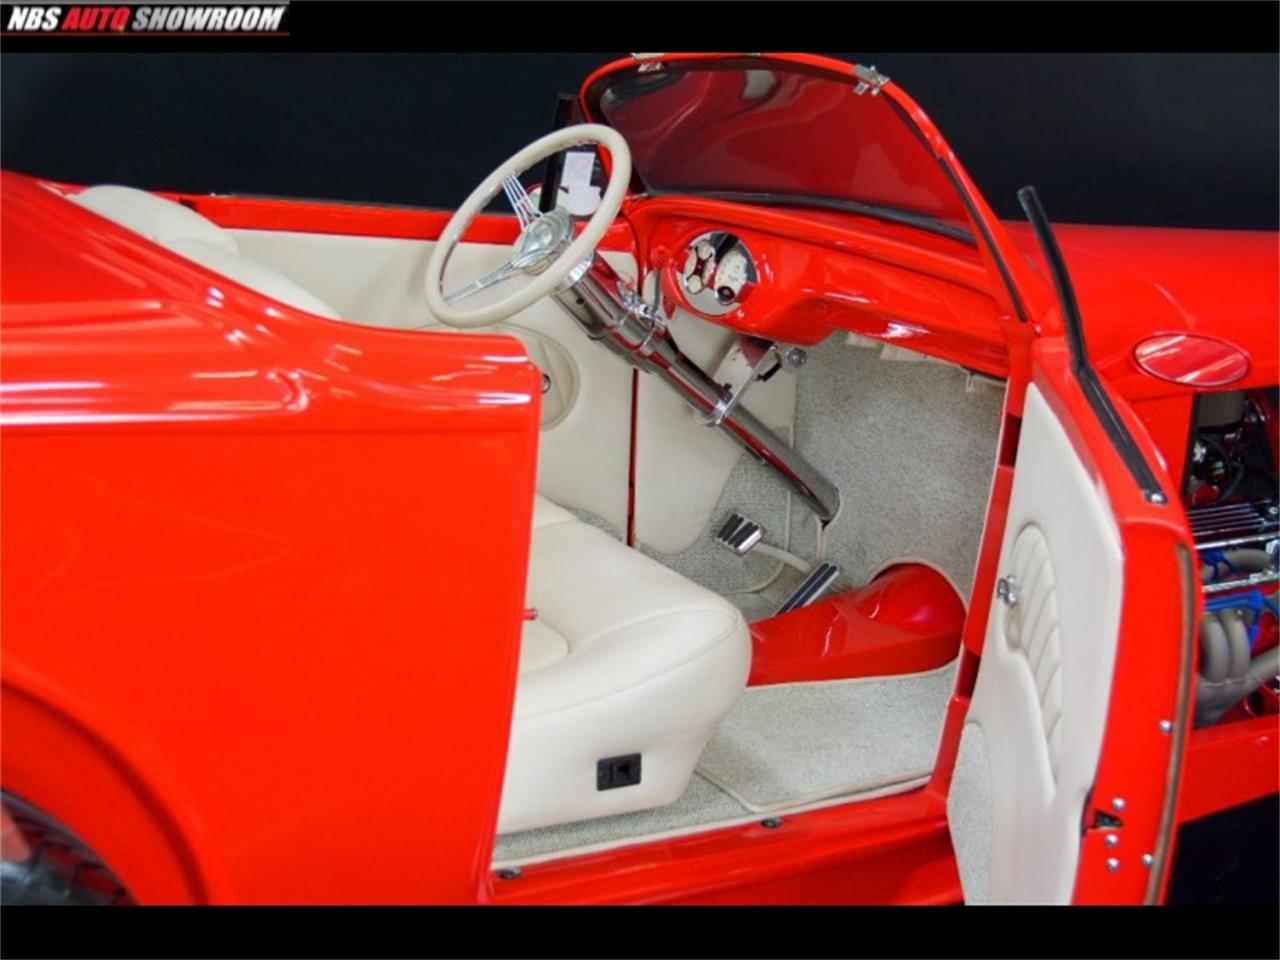 Large Picture of Classic '32 Roadster located in California Offered by NBS Auto Showroom - QY4R